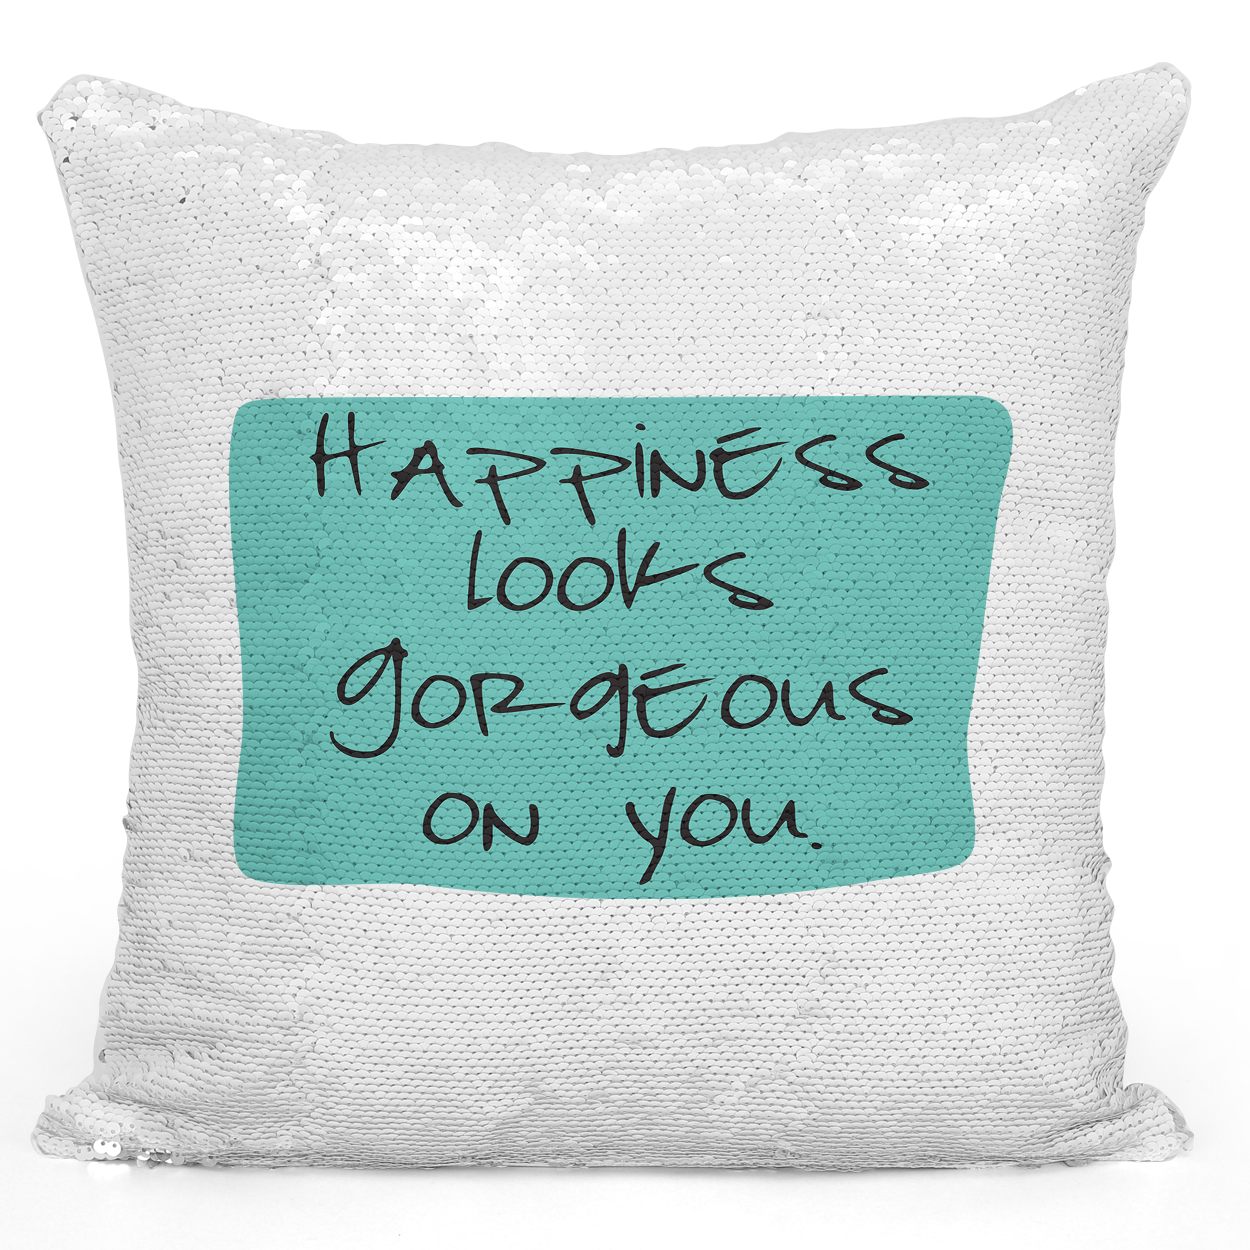 16x16 inch Sequin Throw Pillow Magic Flip Pillow Happiness Looks Gorgeous On You Loud Universe